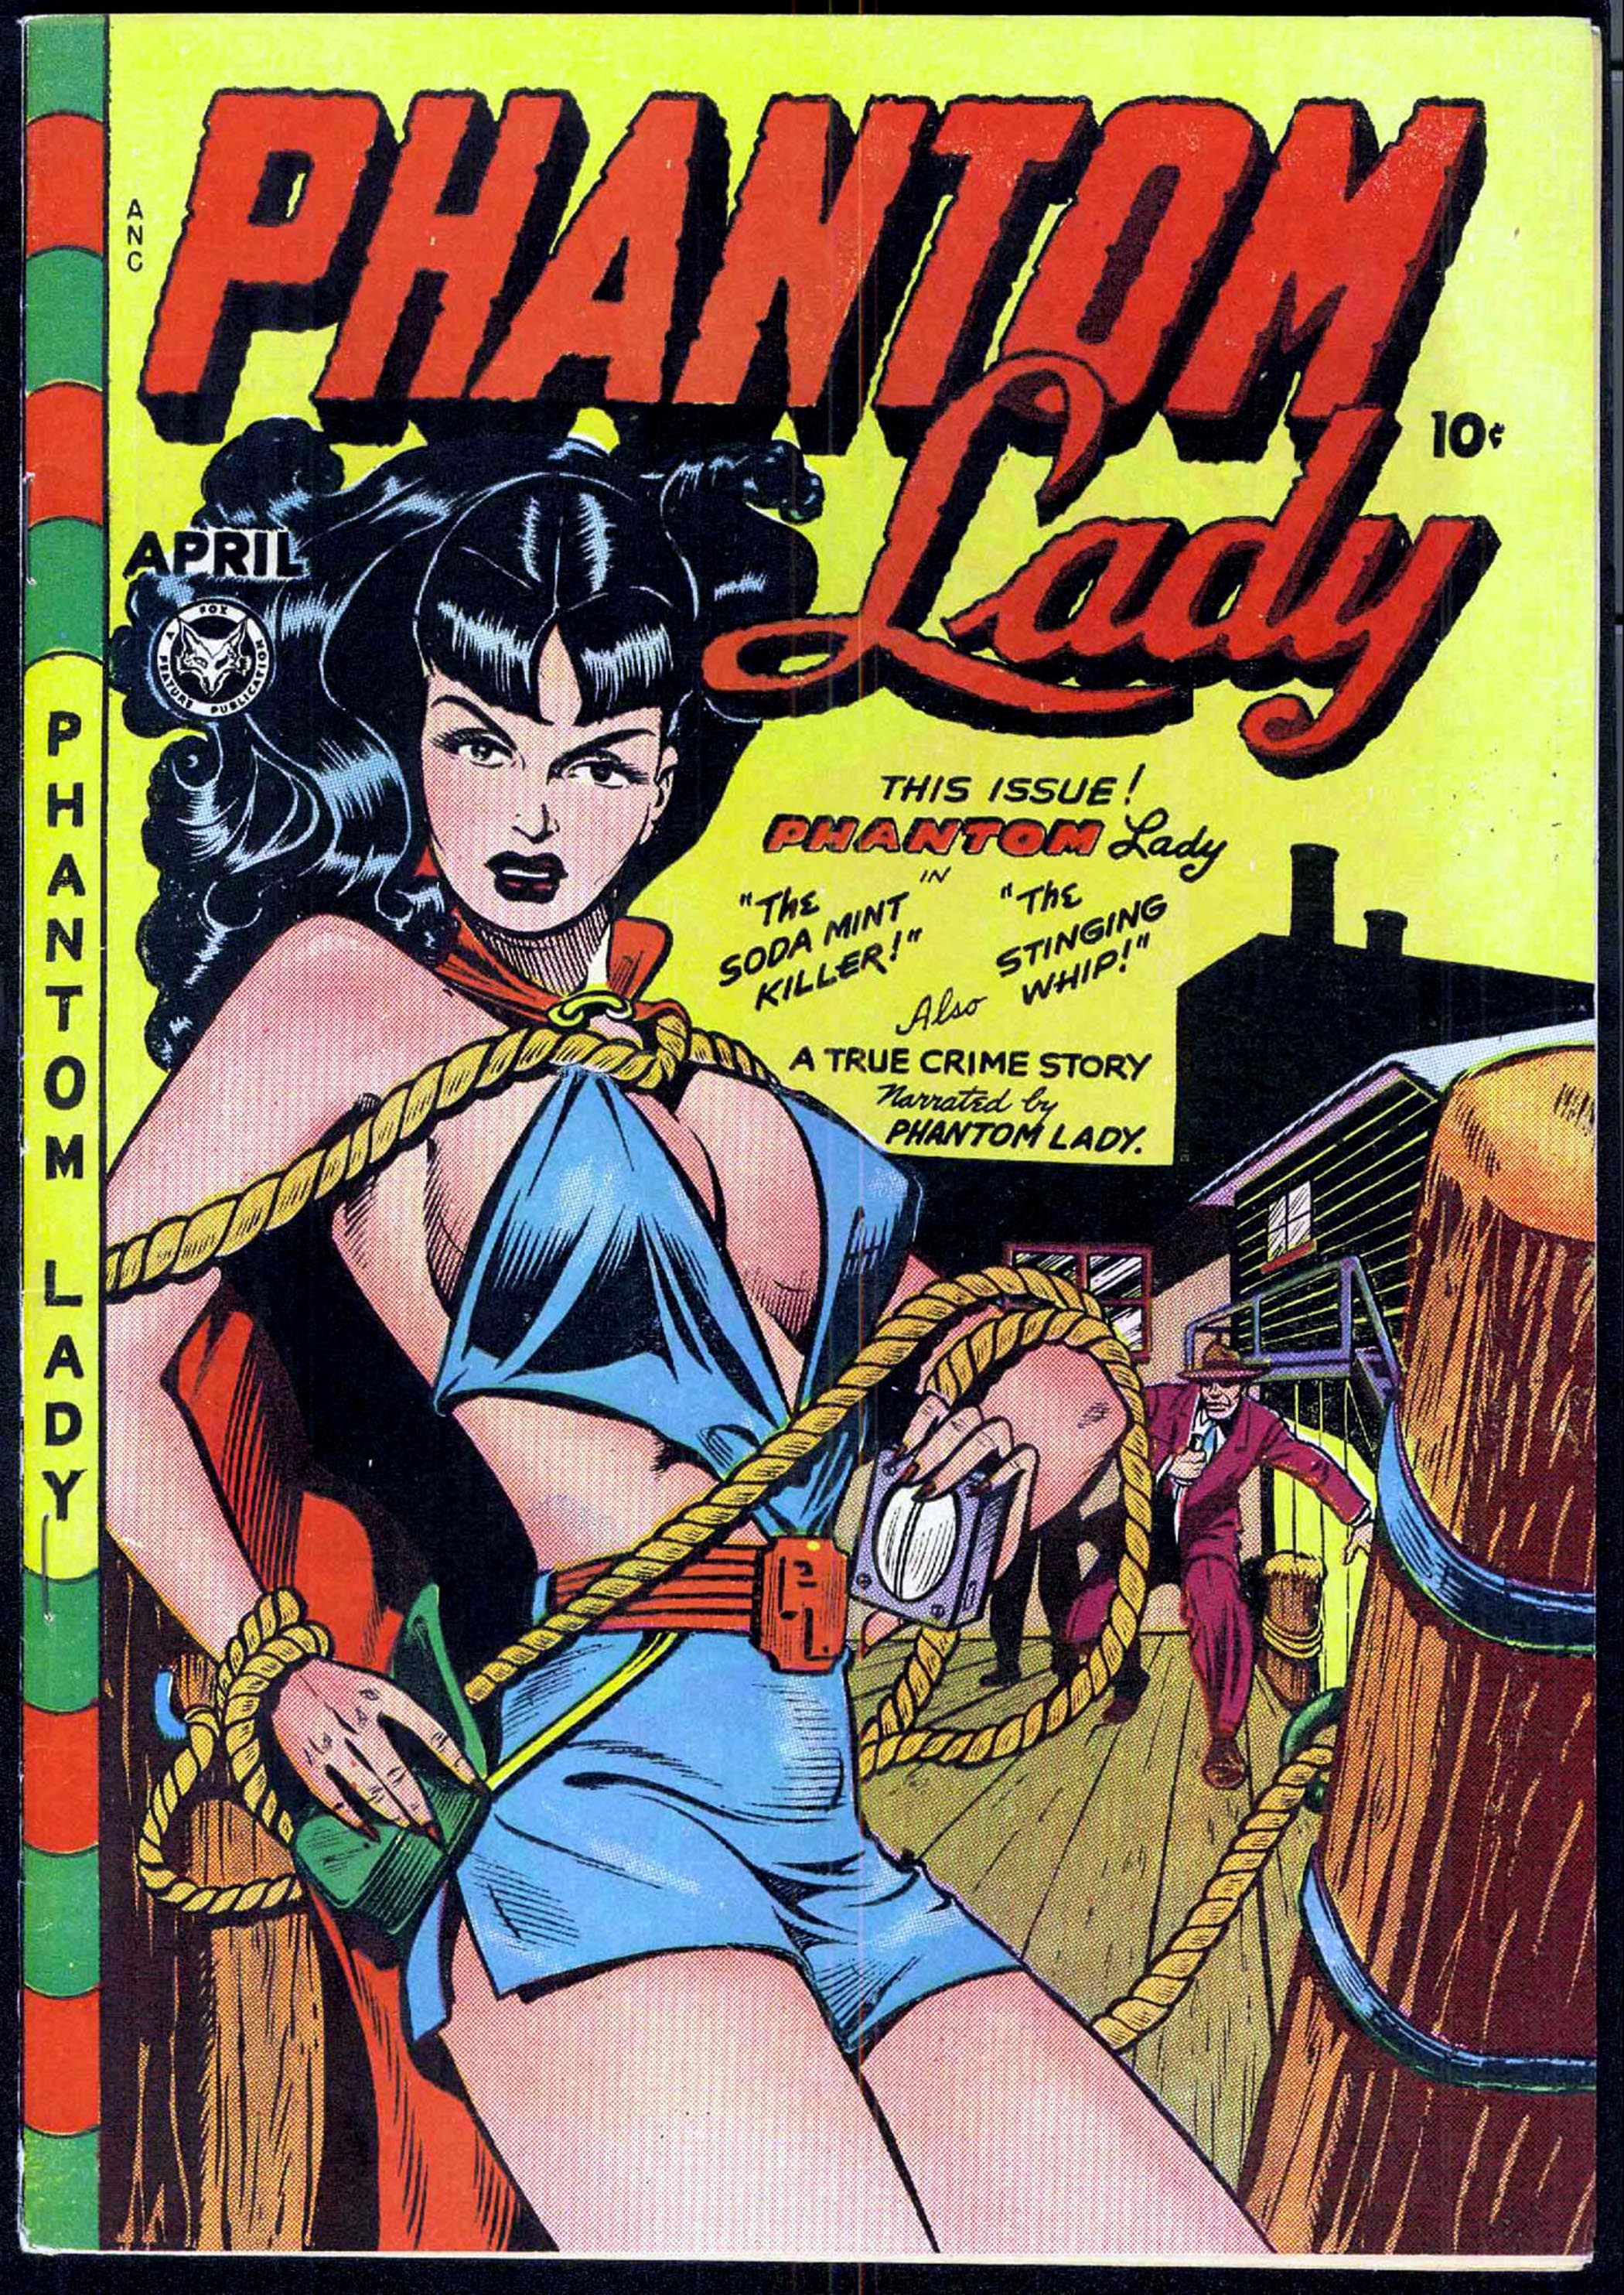 Cover phantom lady by HD Wallpaper